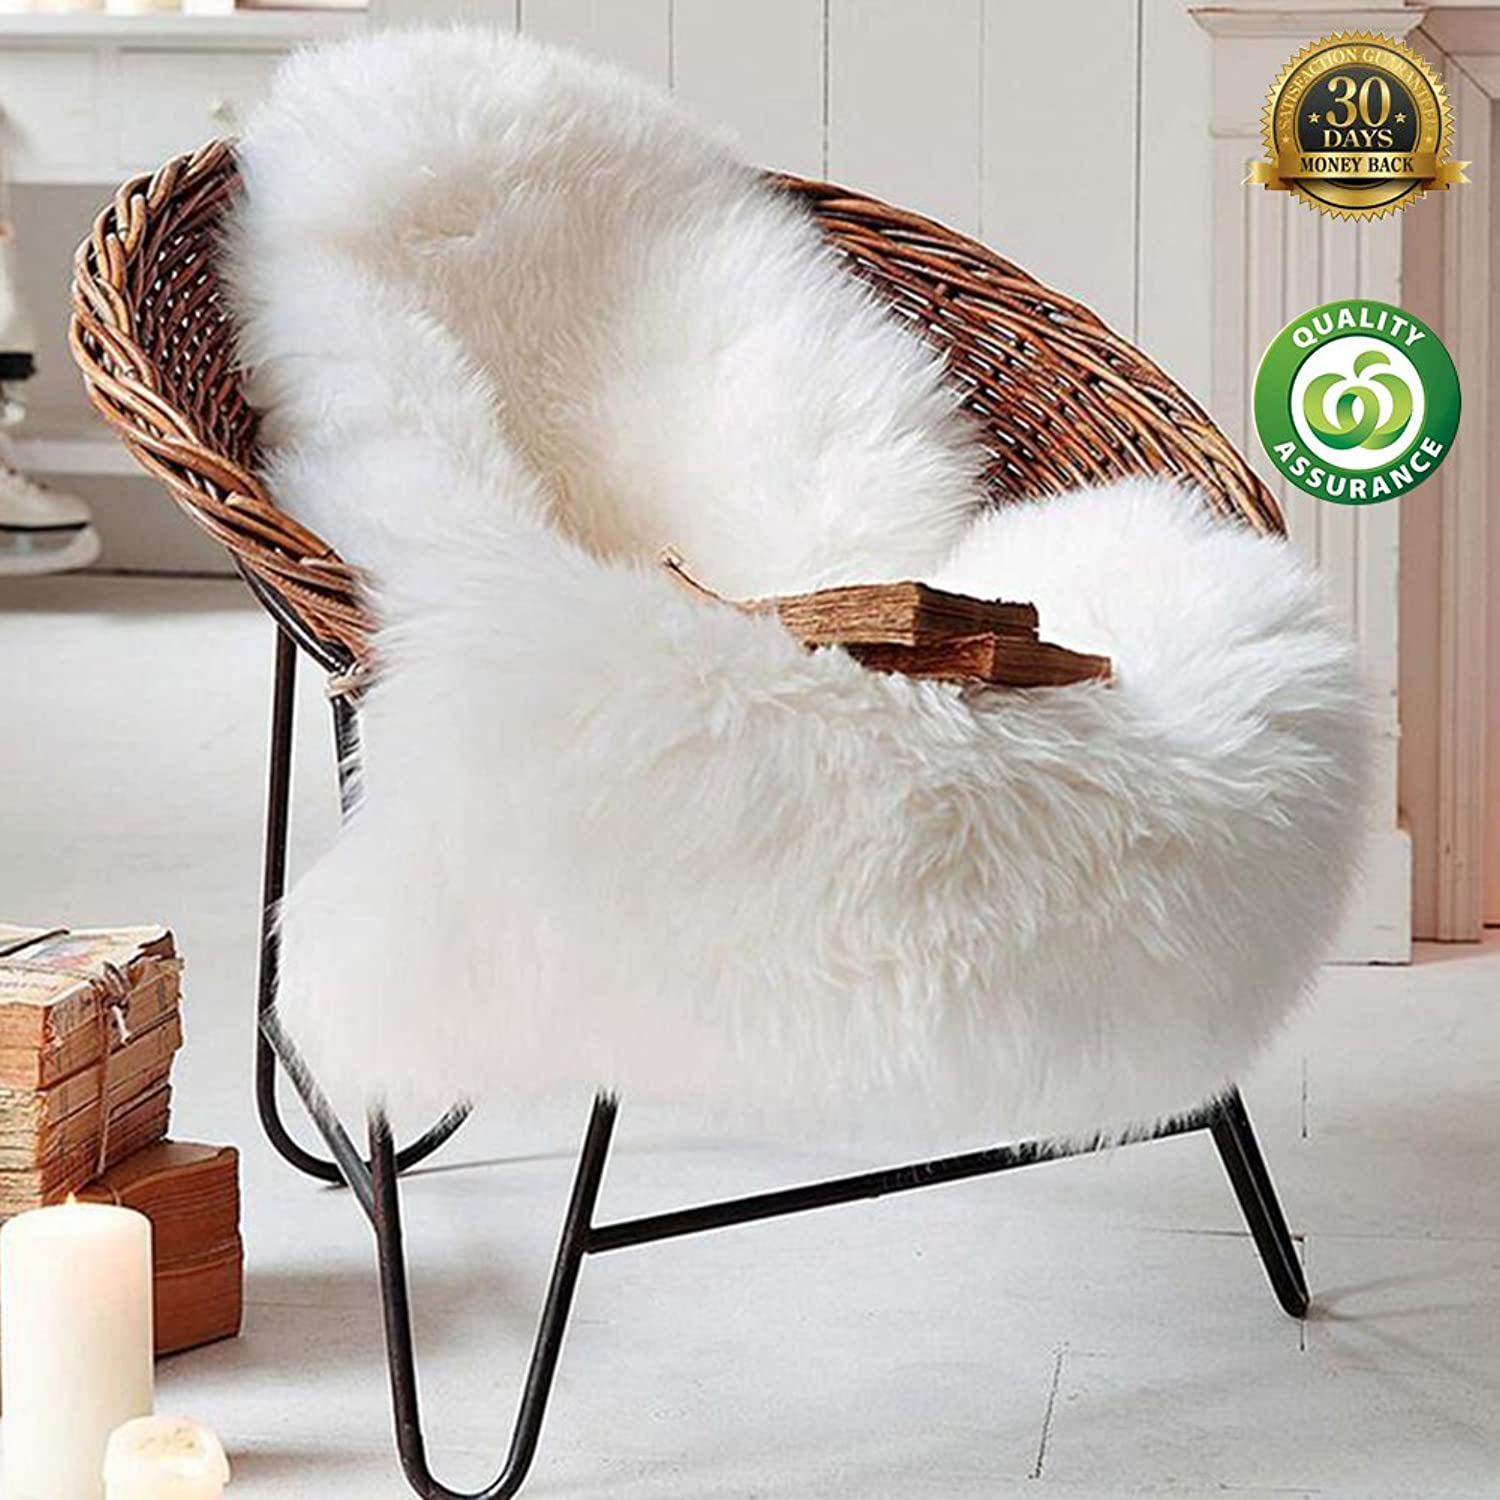 HIGOGOGO Ultra Soft Sheepskin Silky Rug 2'6  by 3'6  White Fluffy Area Rug Suitable for Sofa Couch Living Room Bedroom